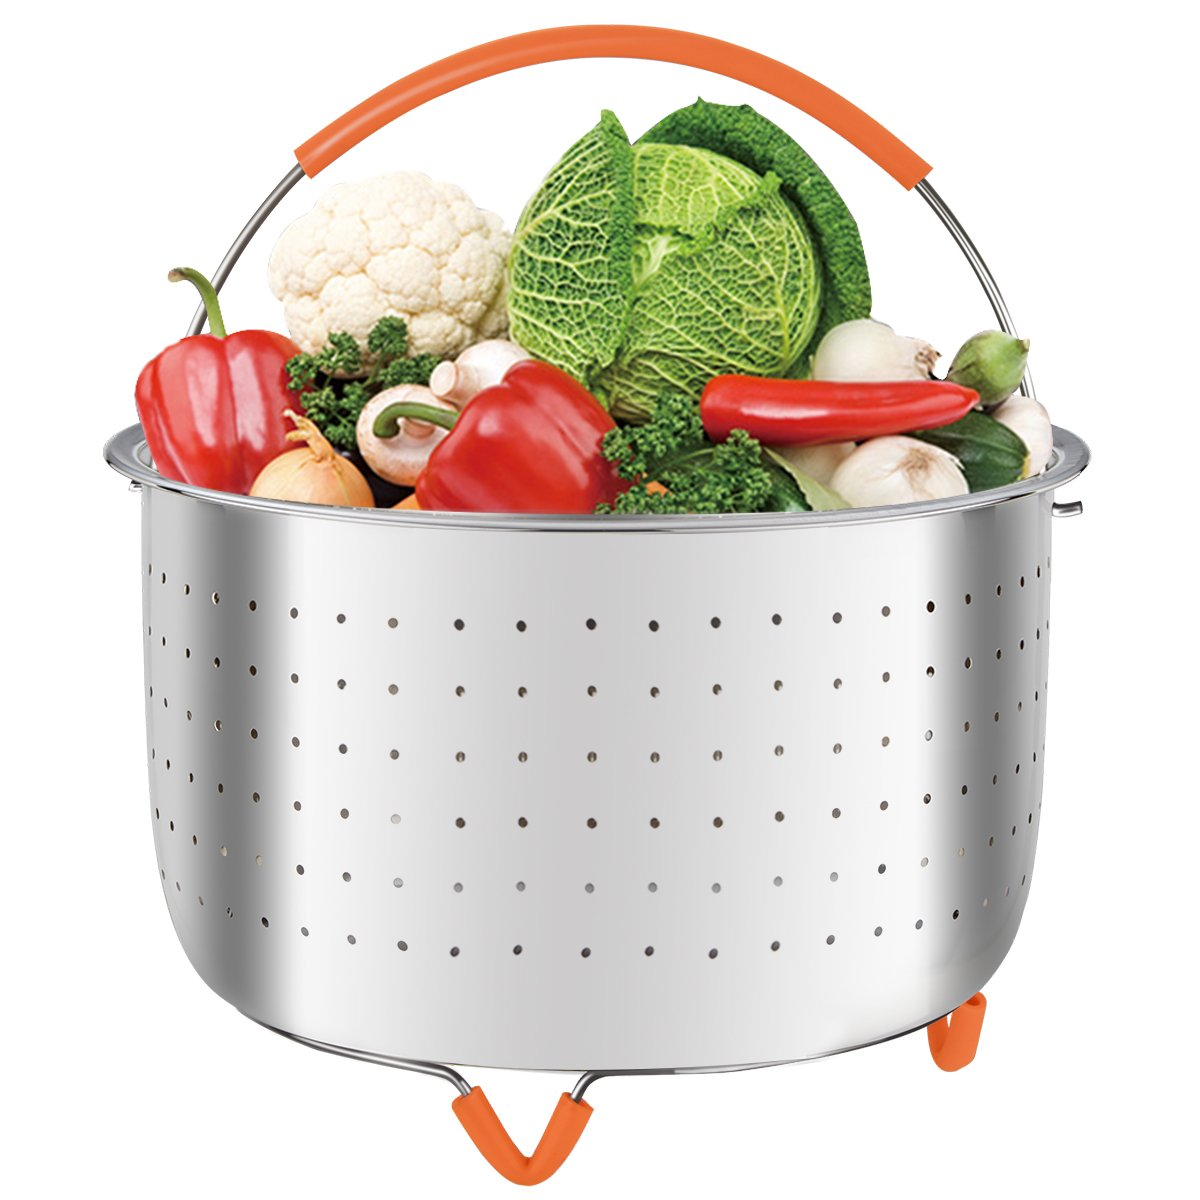 MASHANG Steamer Basket Stainless Steel Compatible for Instant Pot Fits Instapot 6 Quart/8 qt Steamer Insert Veggie Steamer with Silicone Handle and Non-Slip Legs for Steaming Vegetables Eggs